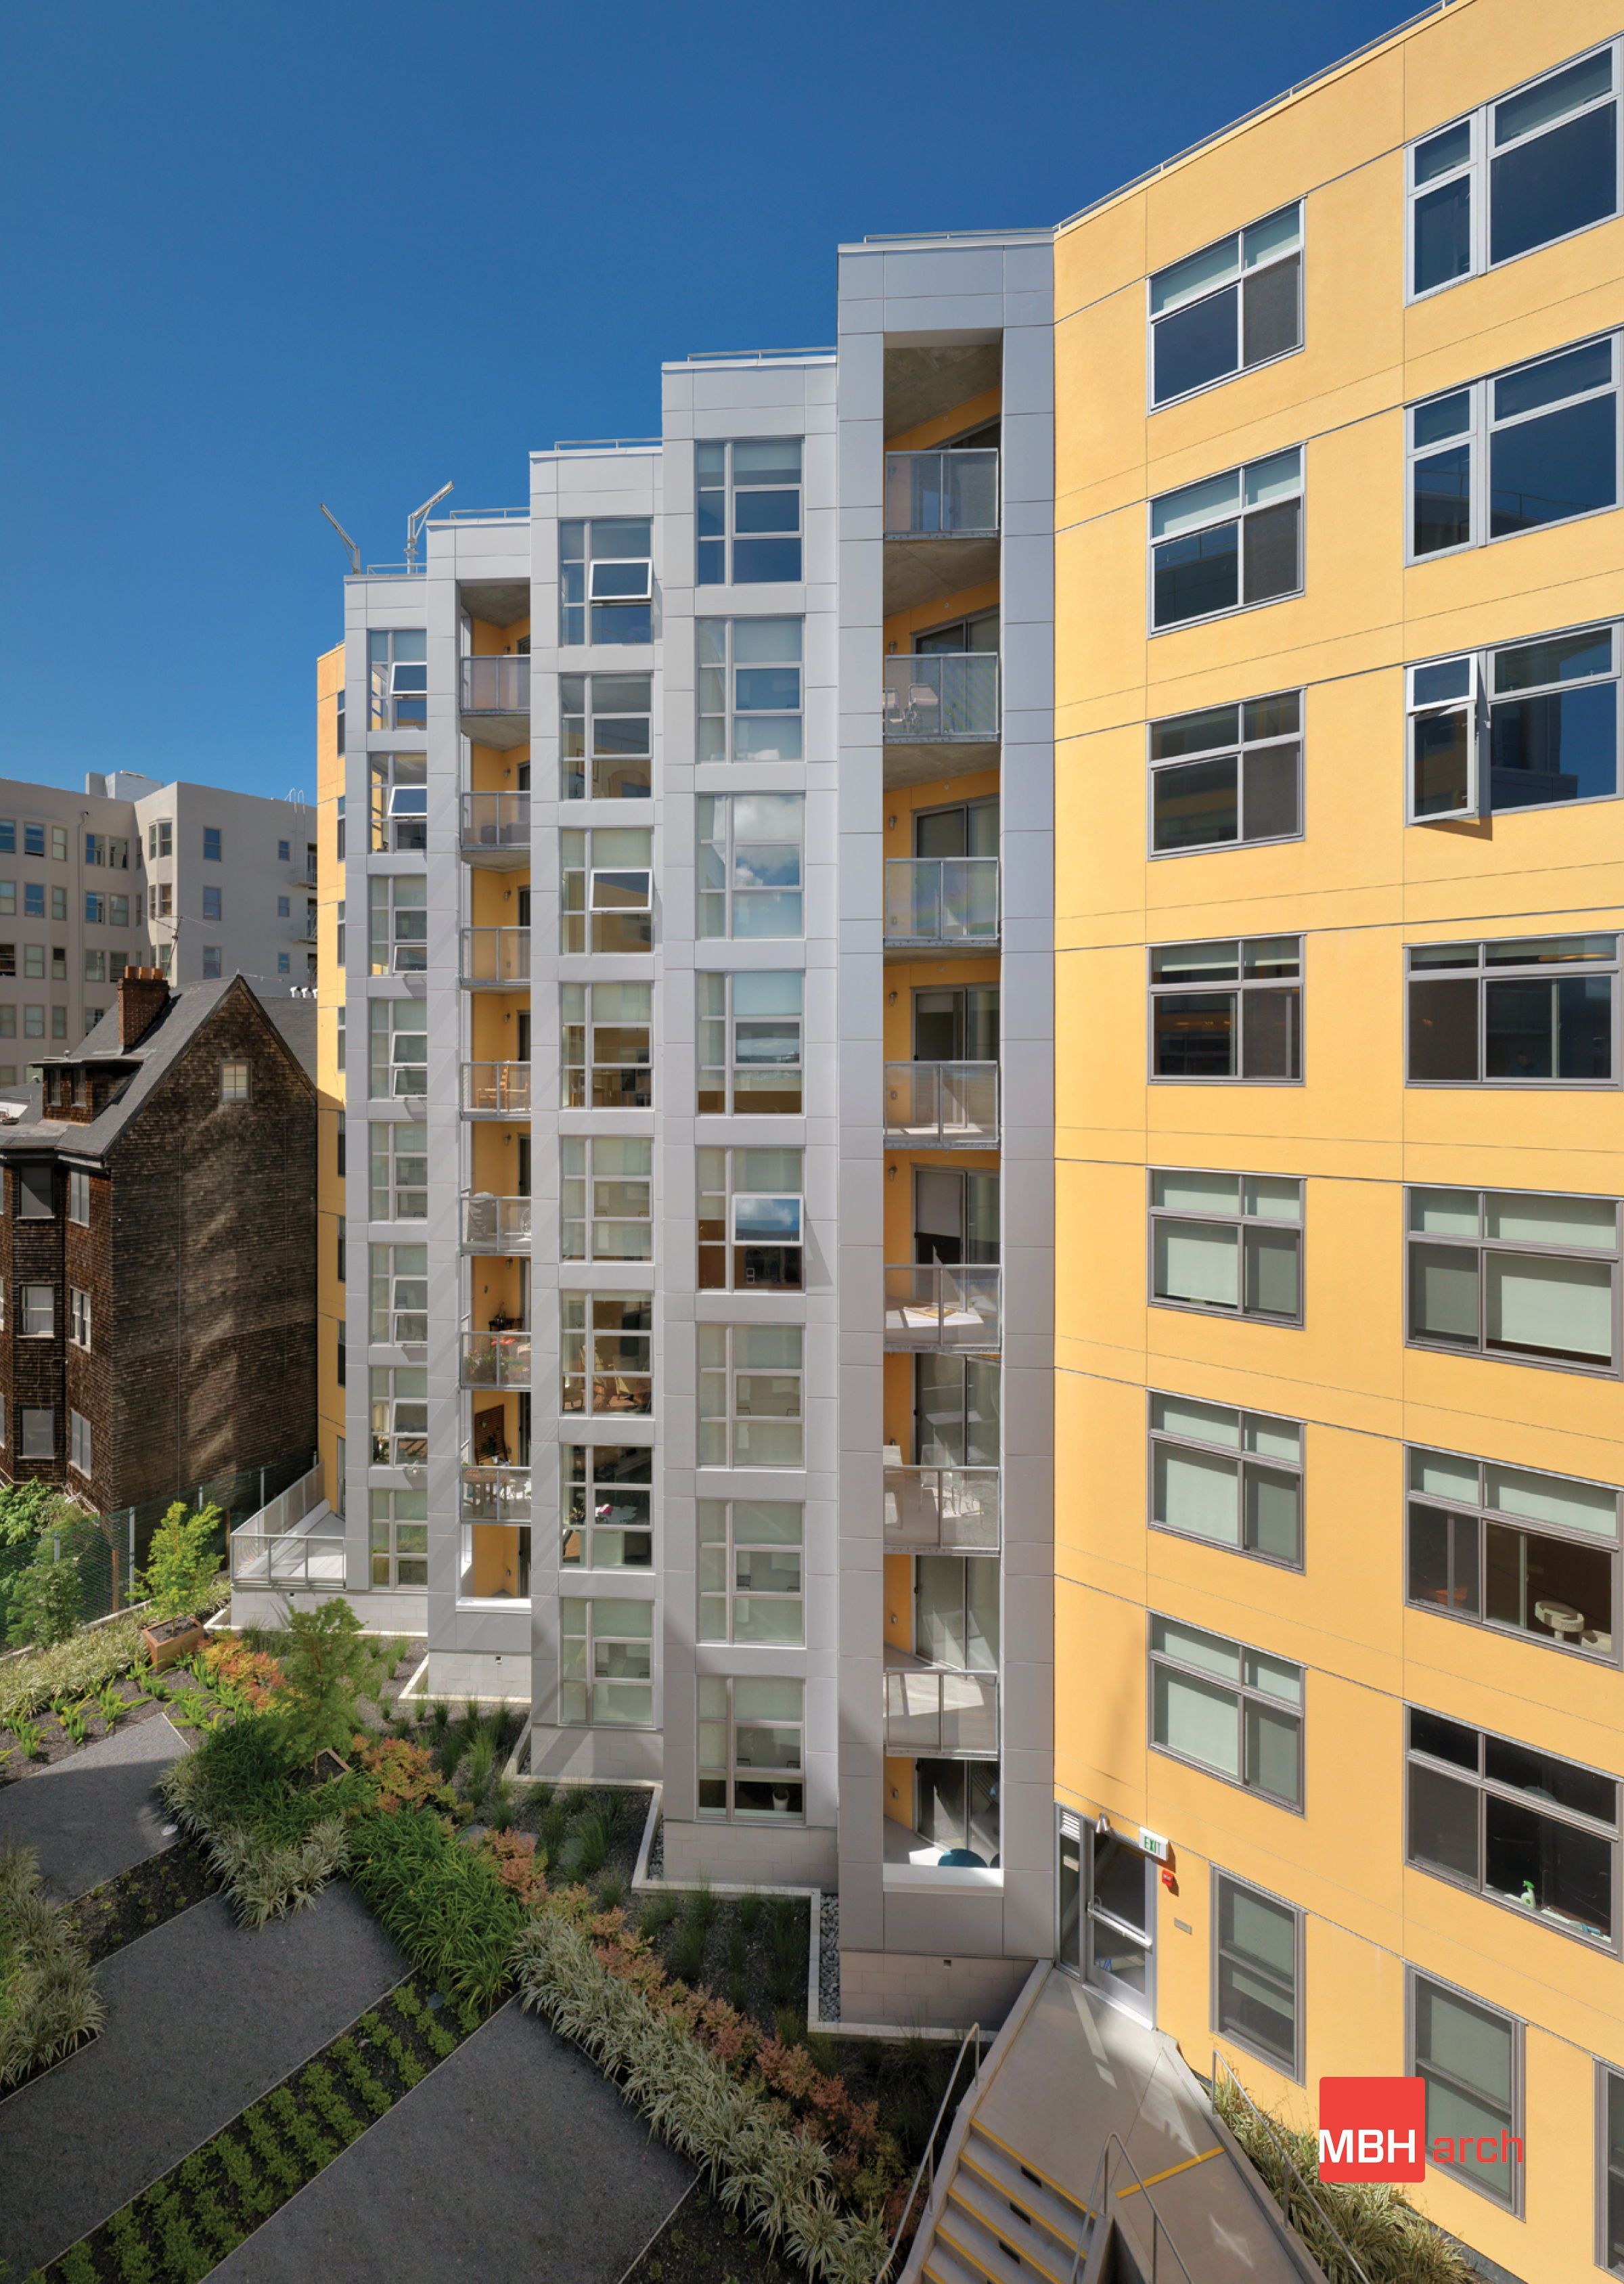 Venn Apartments Mbh Architects Is A Full Service Architecture Firm Headquartered In The San Franci Healthcare Architecture Architect Architectural Practice